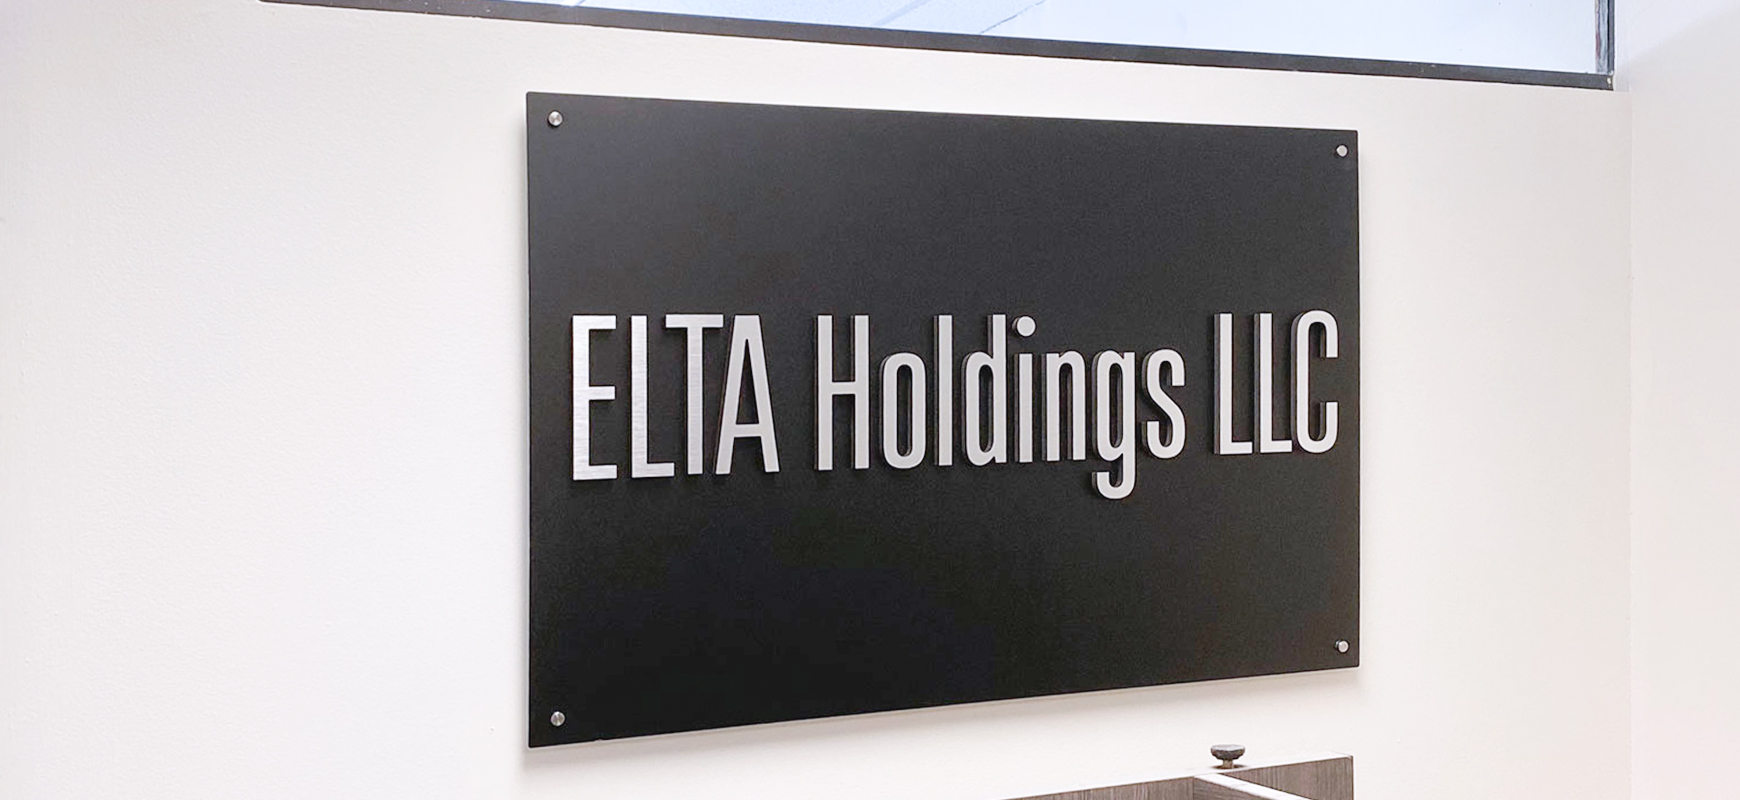 Elta Holdings LLC foam core sign with brushed brand name 3d letters made of ultra board